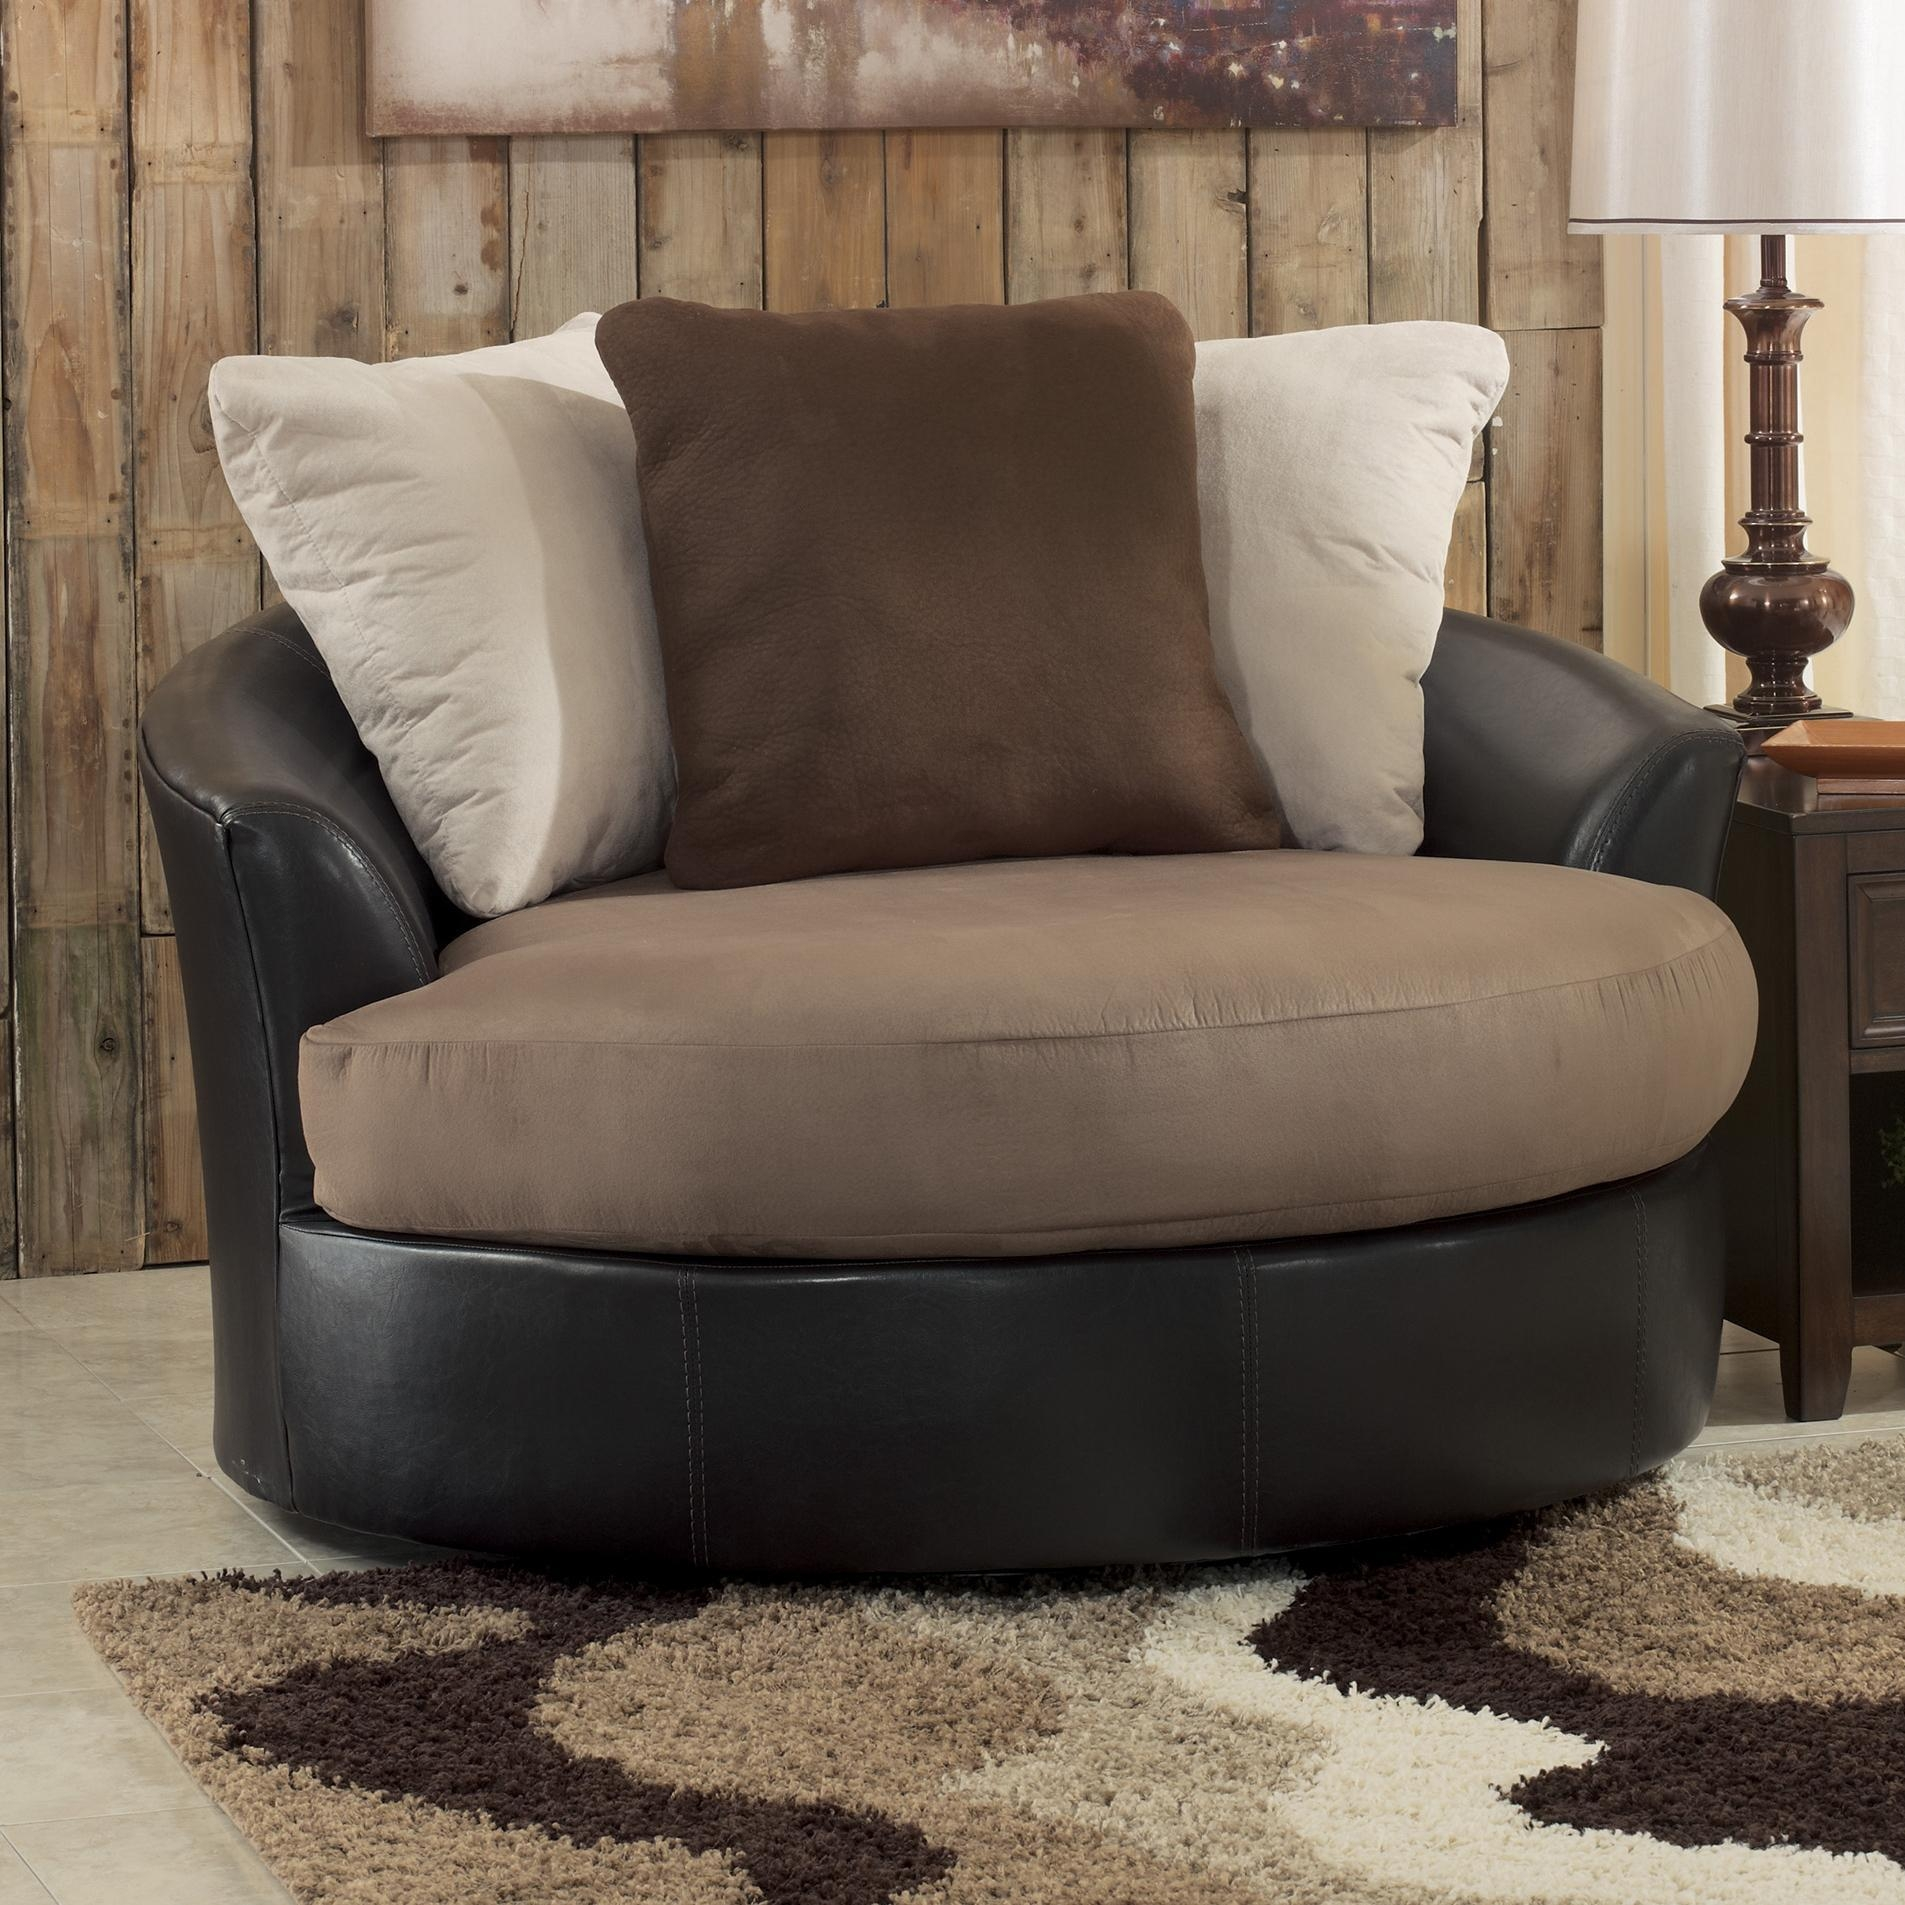 Oversized Chairs For Living Room Living Room Design And Living Within Round Swivel Sofa Chairs (Image 6 of 20)